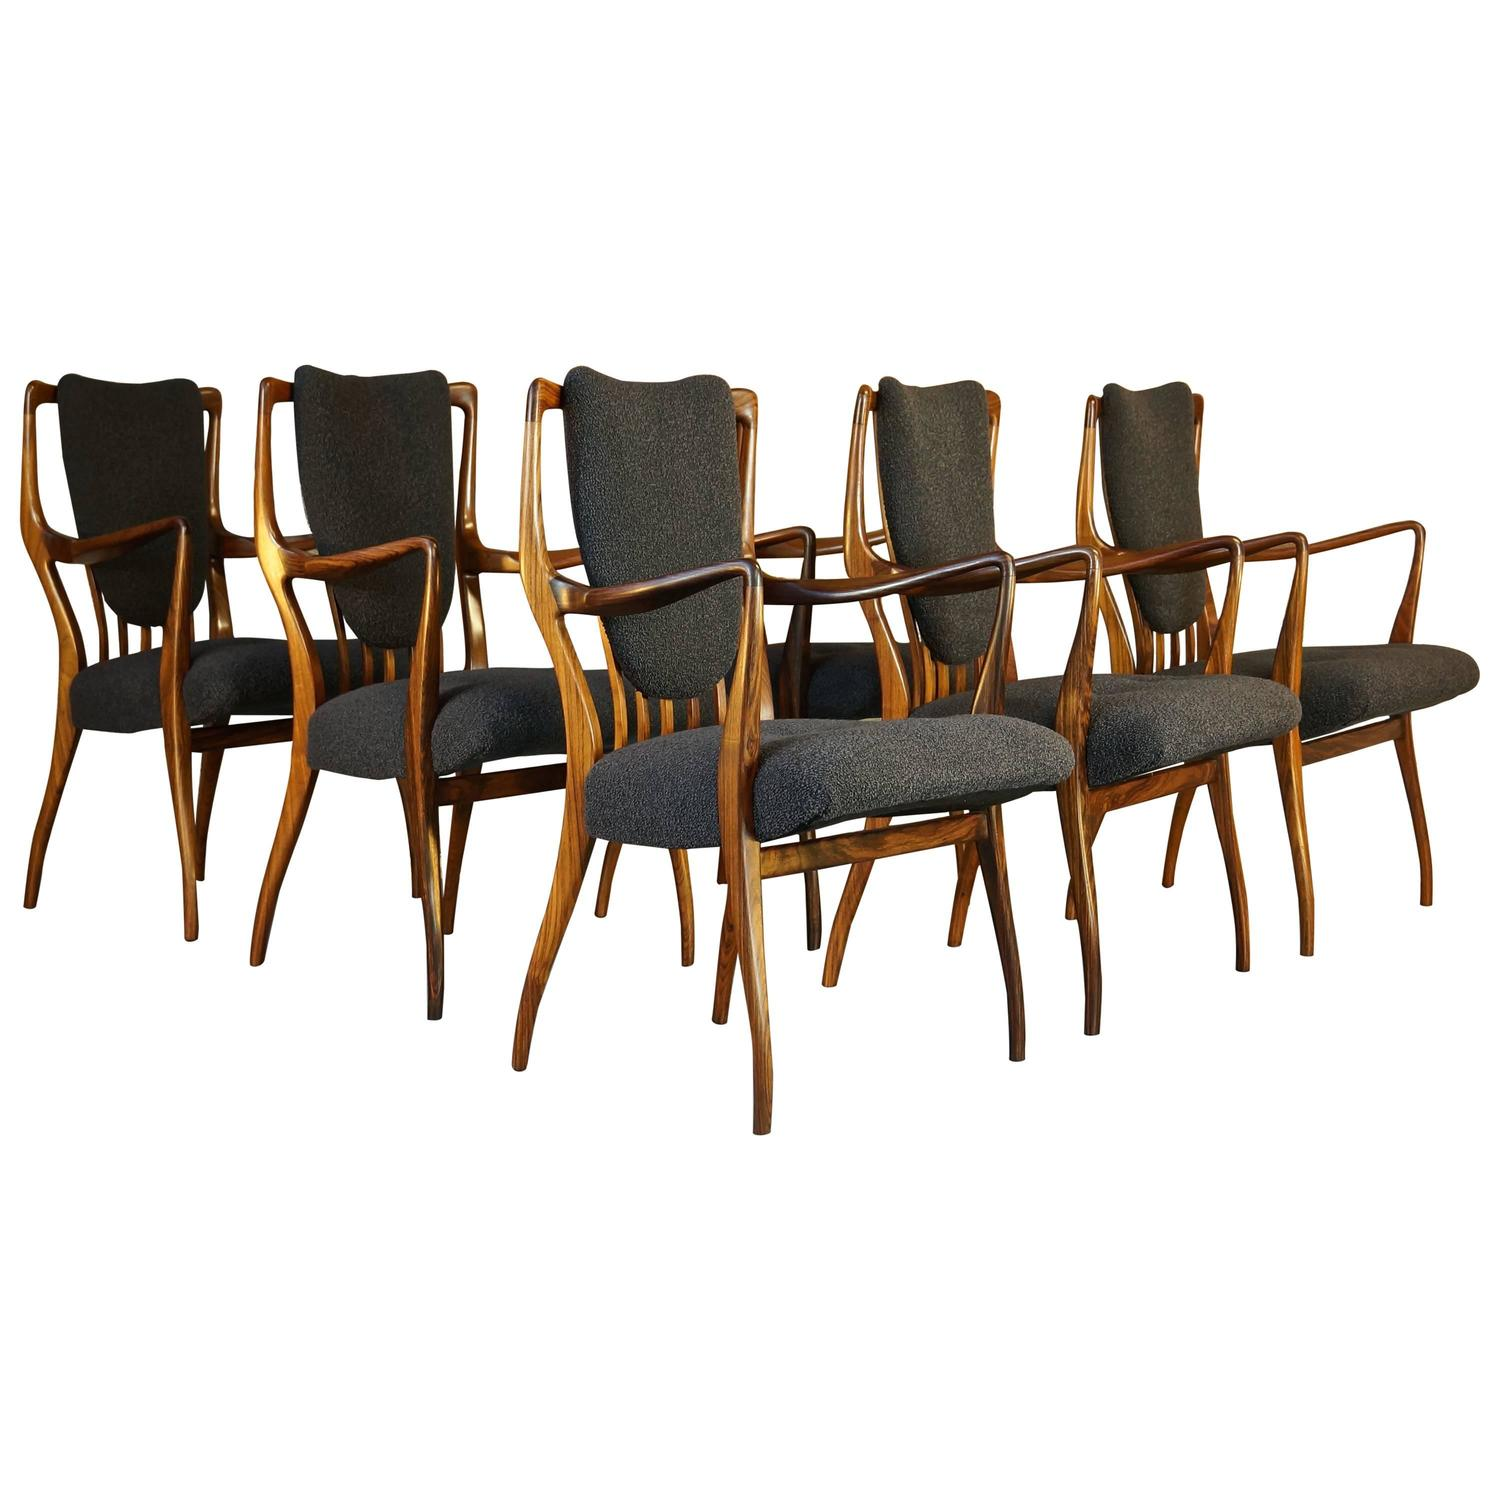 Vintage 1940s Rosewood and Wool Dining Chairs Set of Six by Andrew